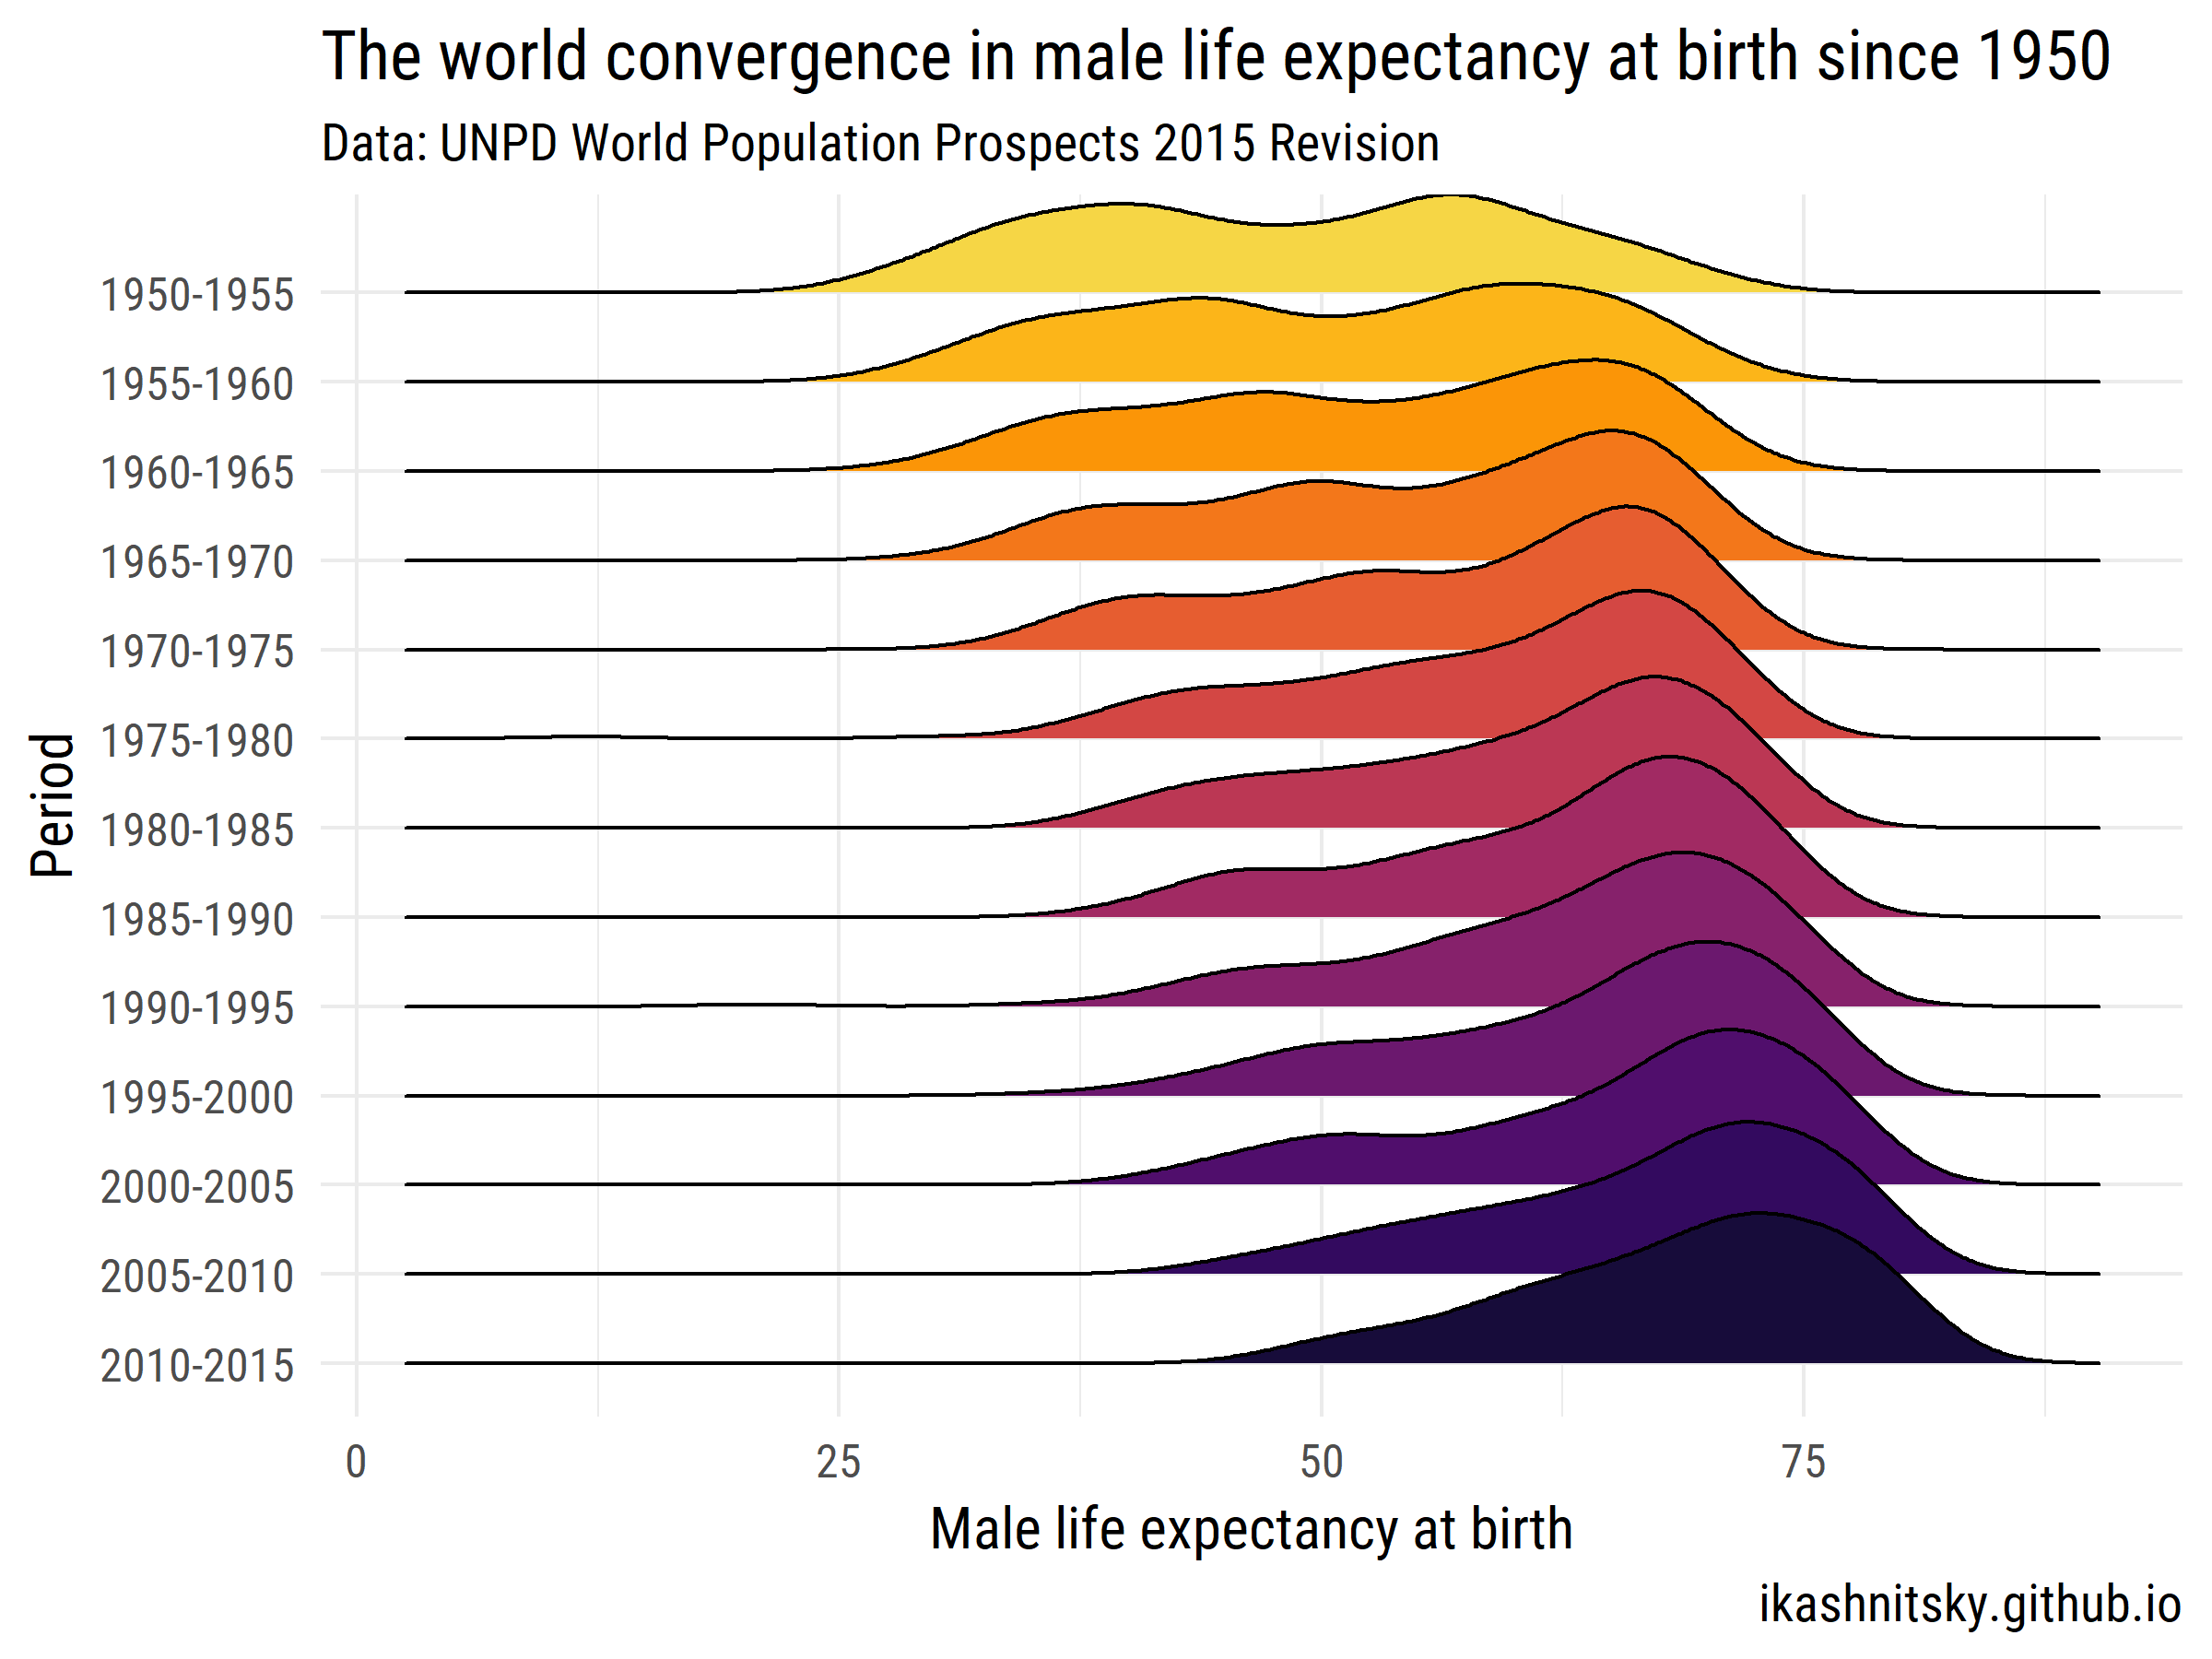 Global convergence in male life expectancy at birth